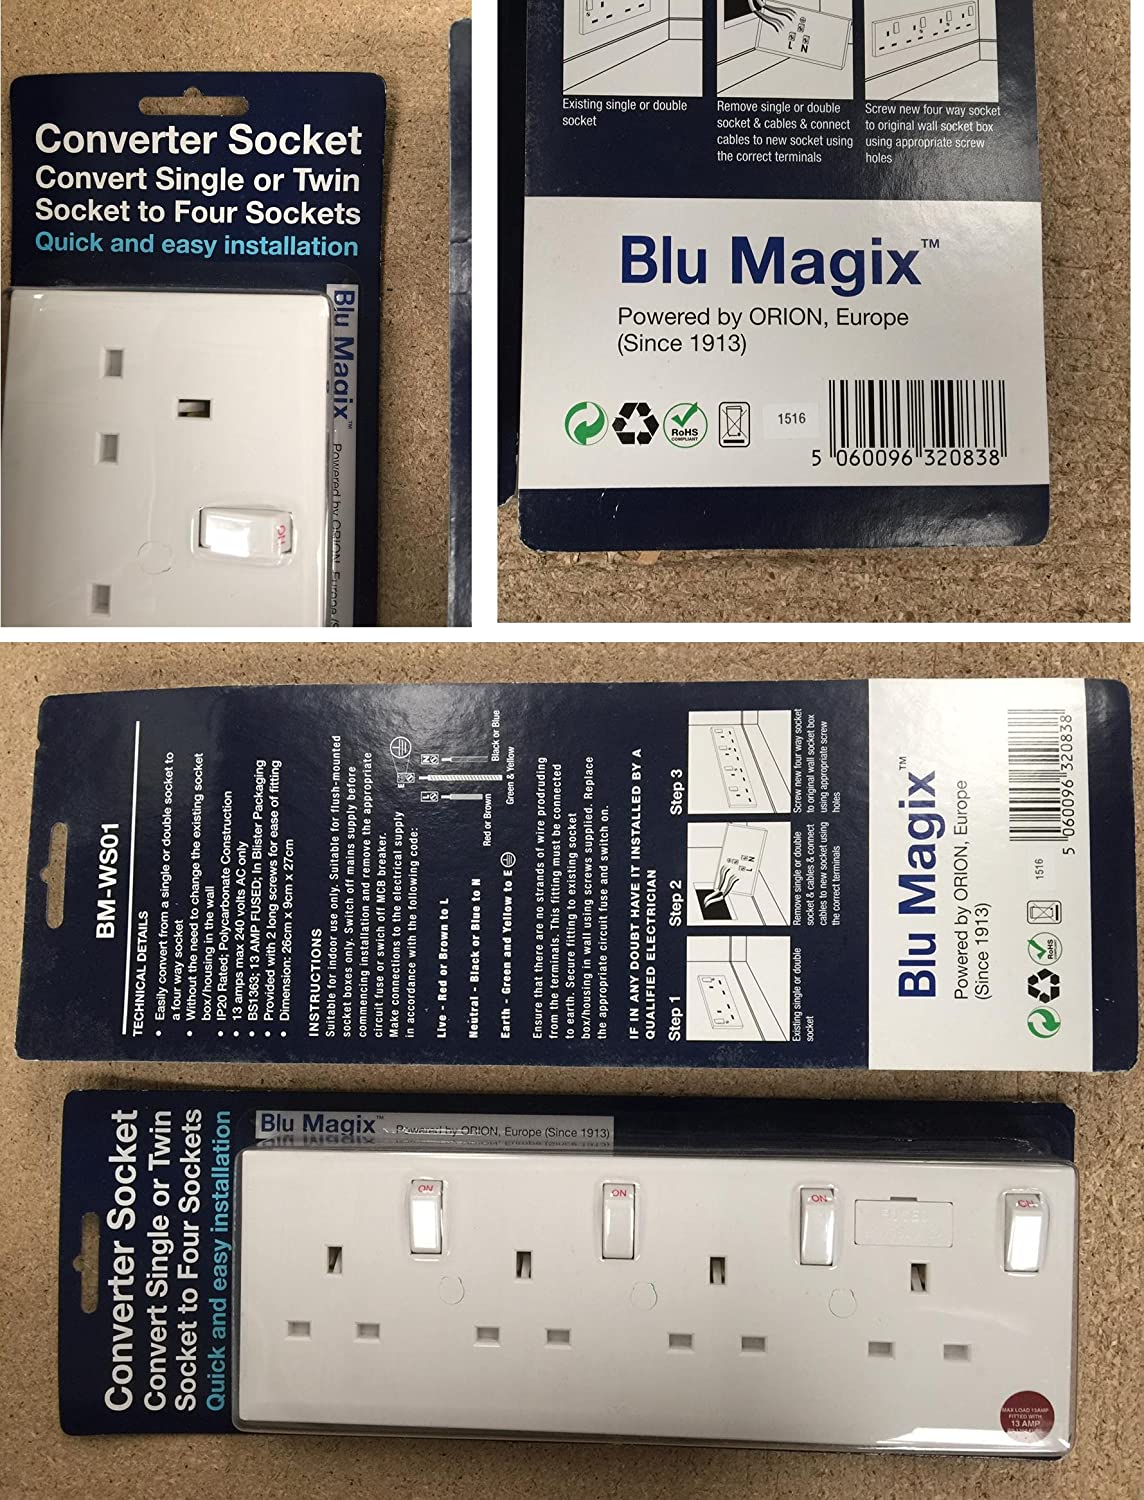 Blumagix Converter Socket Converts Single Or Twin To Four One Gang Two Way Light Switch Sockets Diy Tools